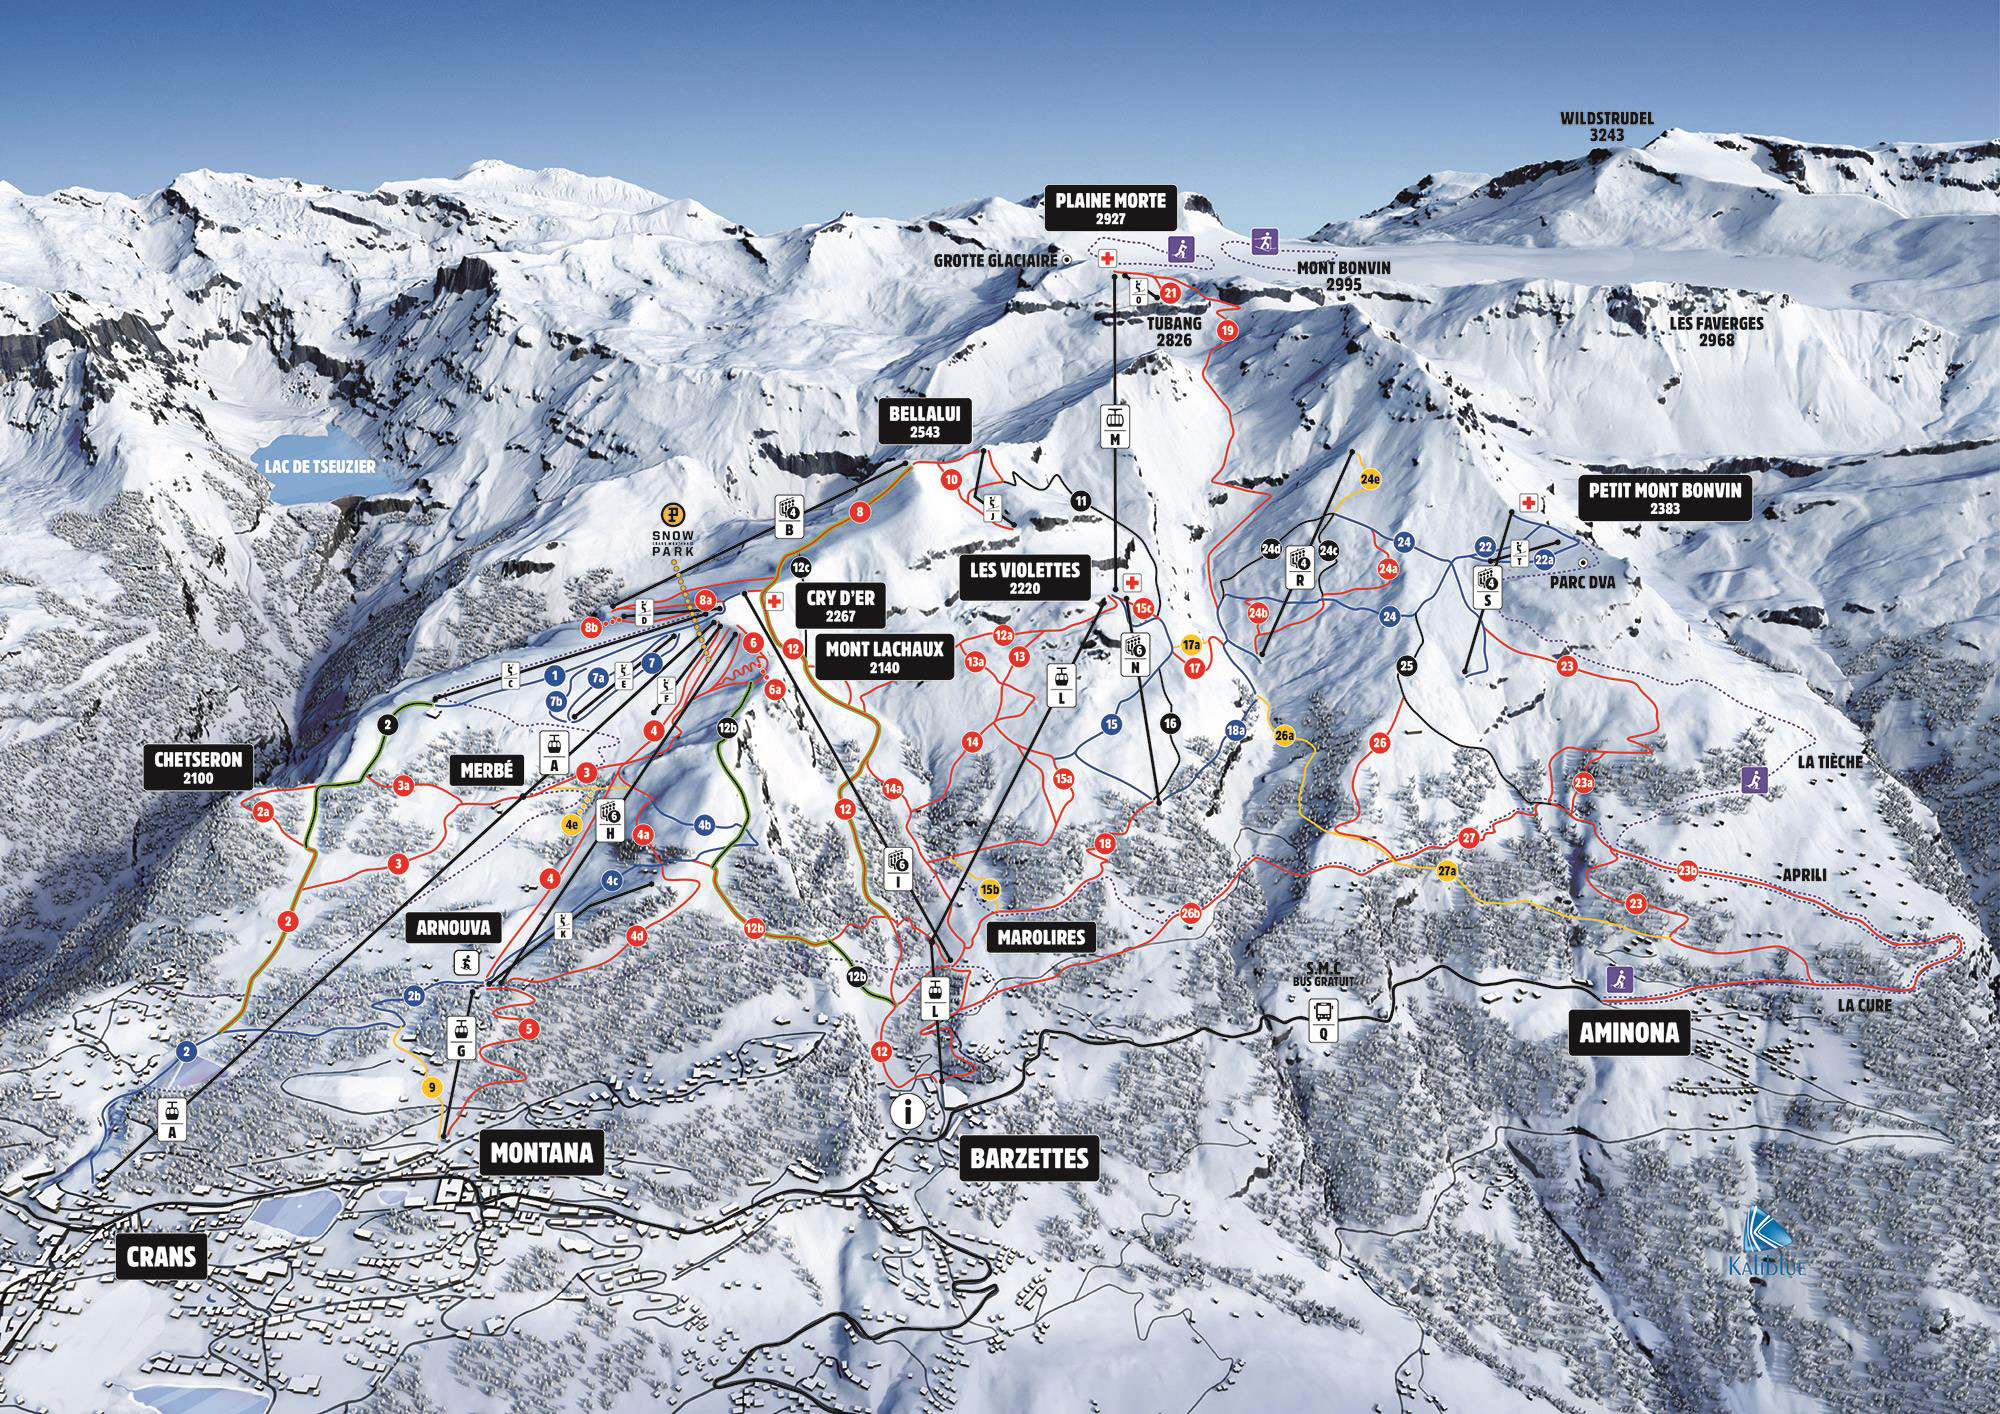 Ski map CransMontana Switzerland